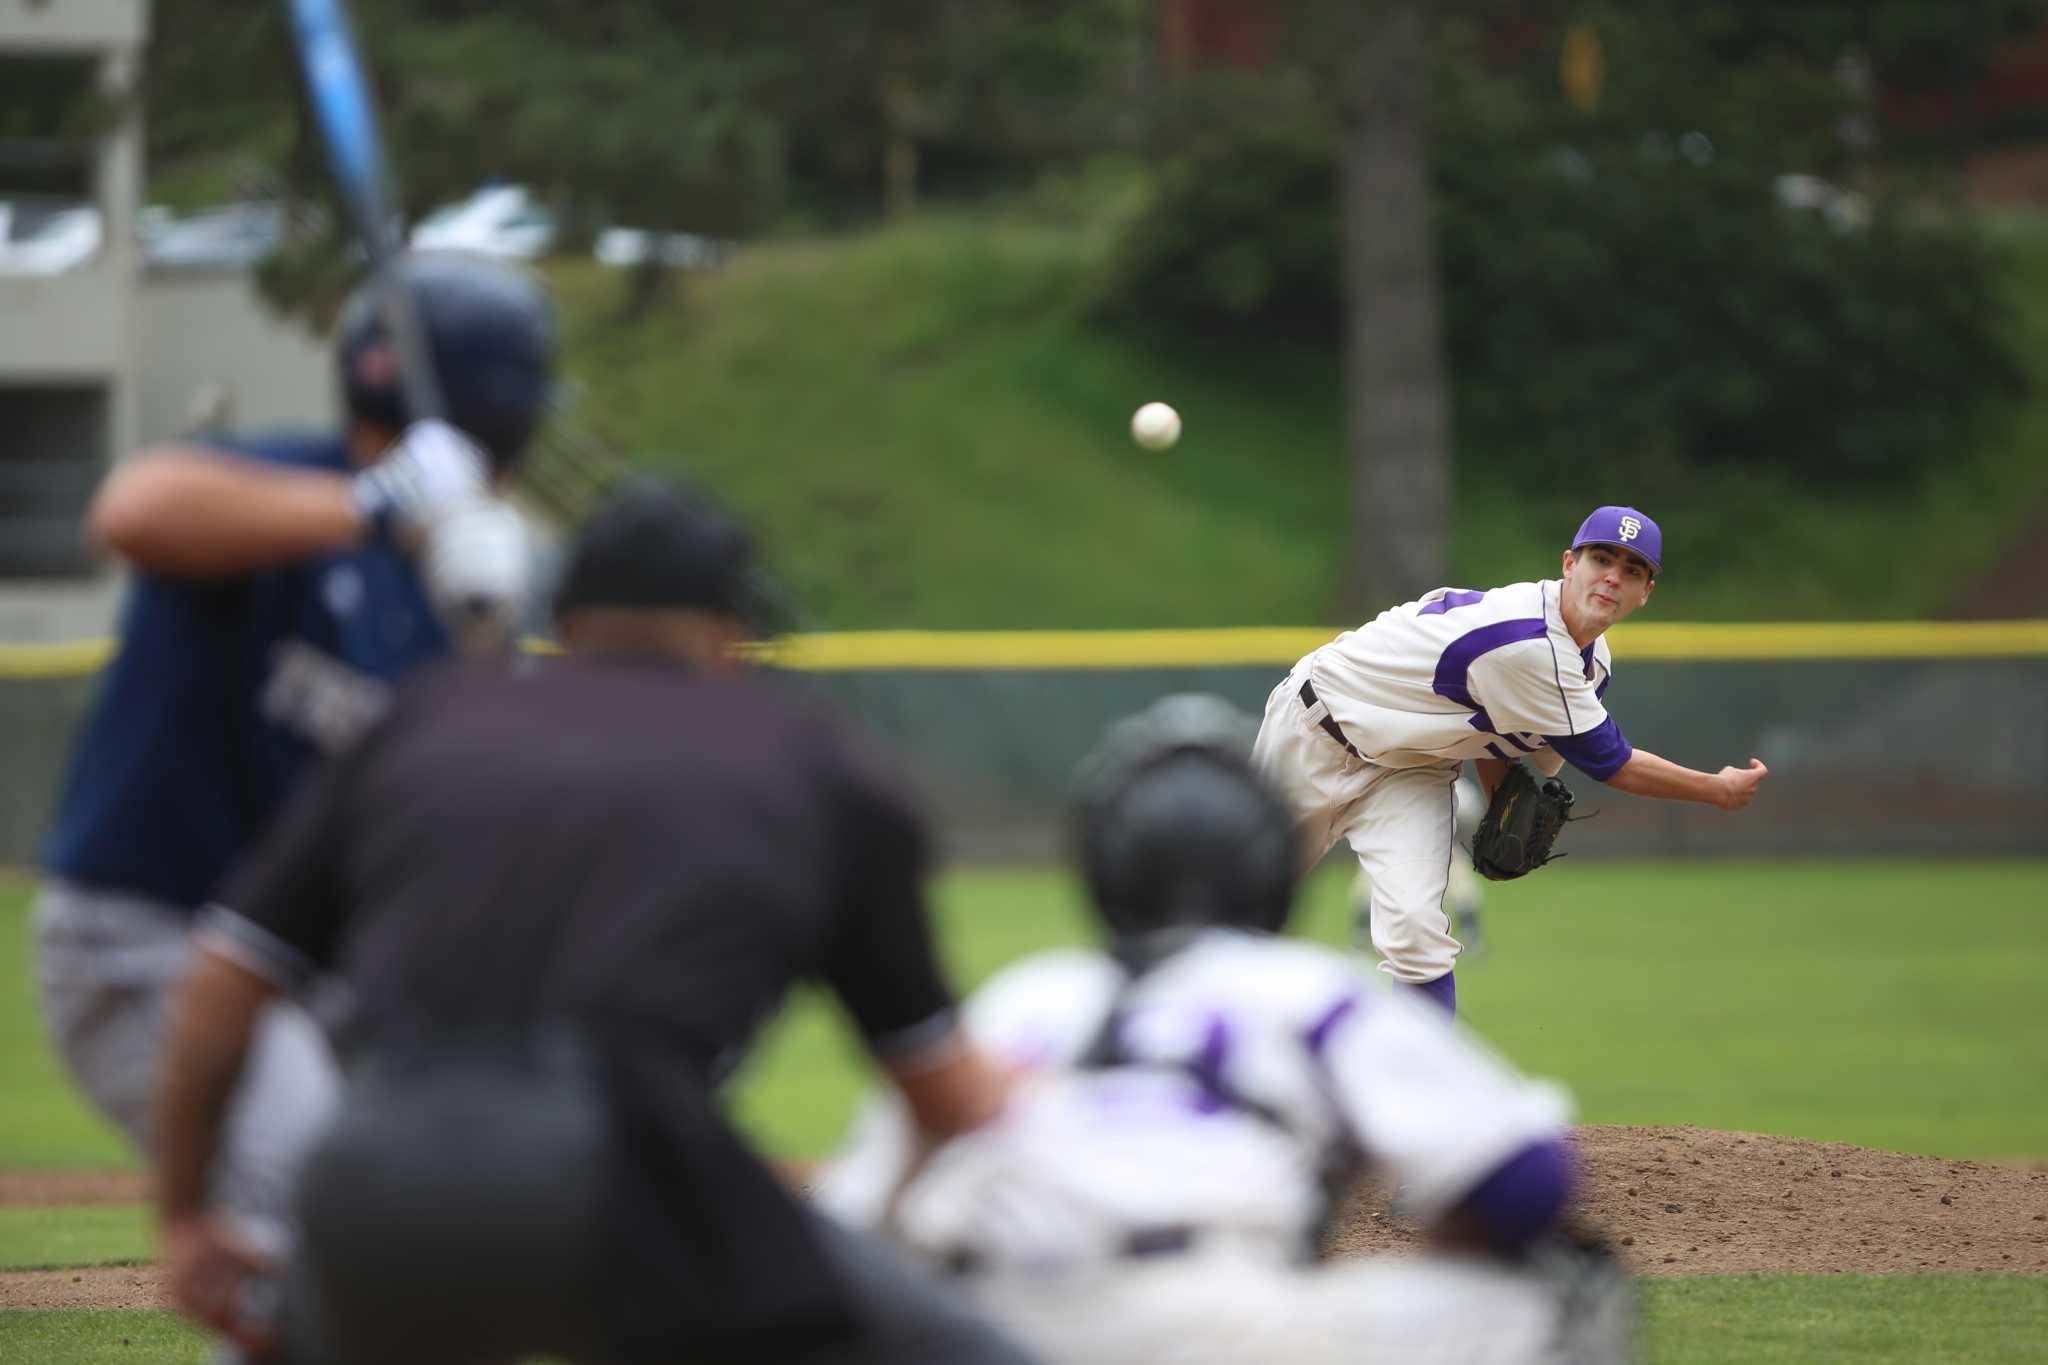 SF State's Jack Veronin pitches  at the first game of a doubleheader against SF State at SF State' Maloney Field Friday, April 18. SF State lost the first game 17-3 but rebounded in the second and won 3-1. Photo by Rachel Aston / Xpress